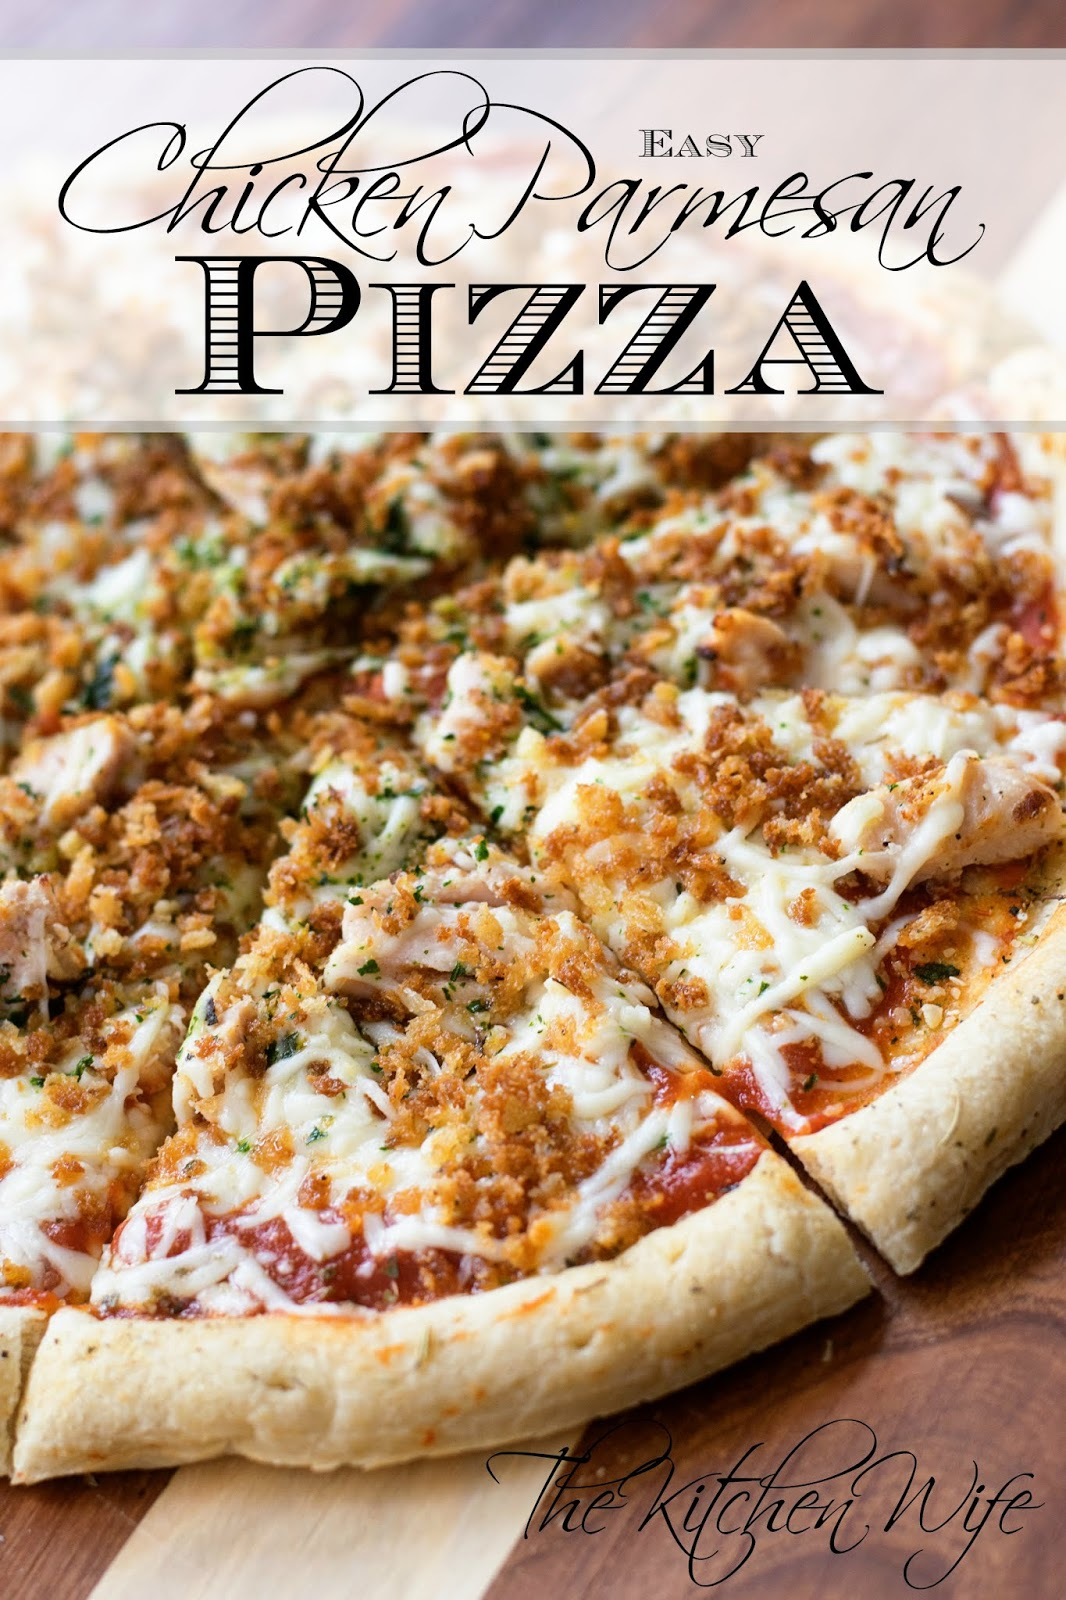 How To Make Cheap And Easy Chicken Parmesan Pizza The Kitchen Wife